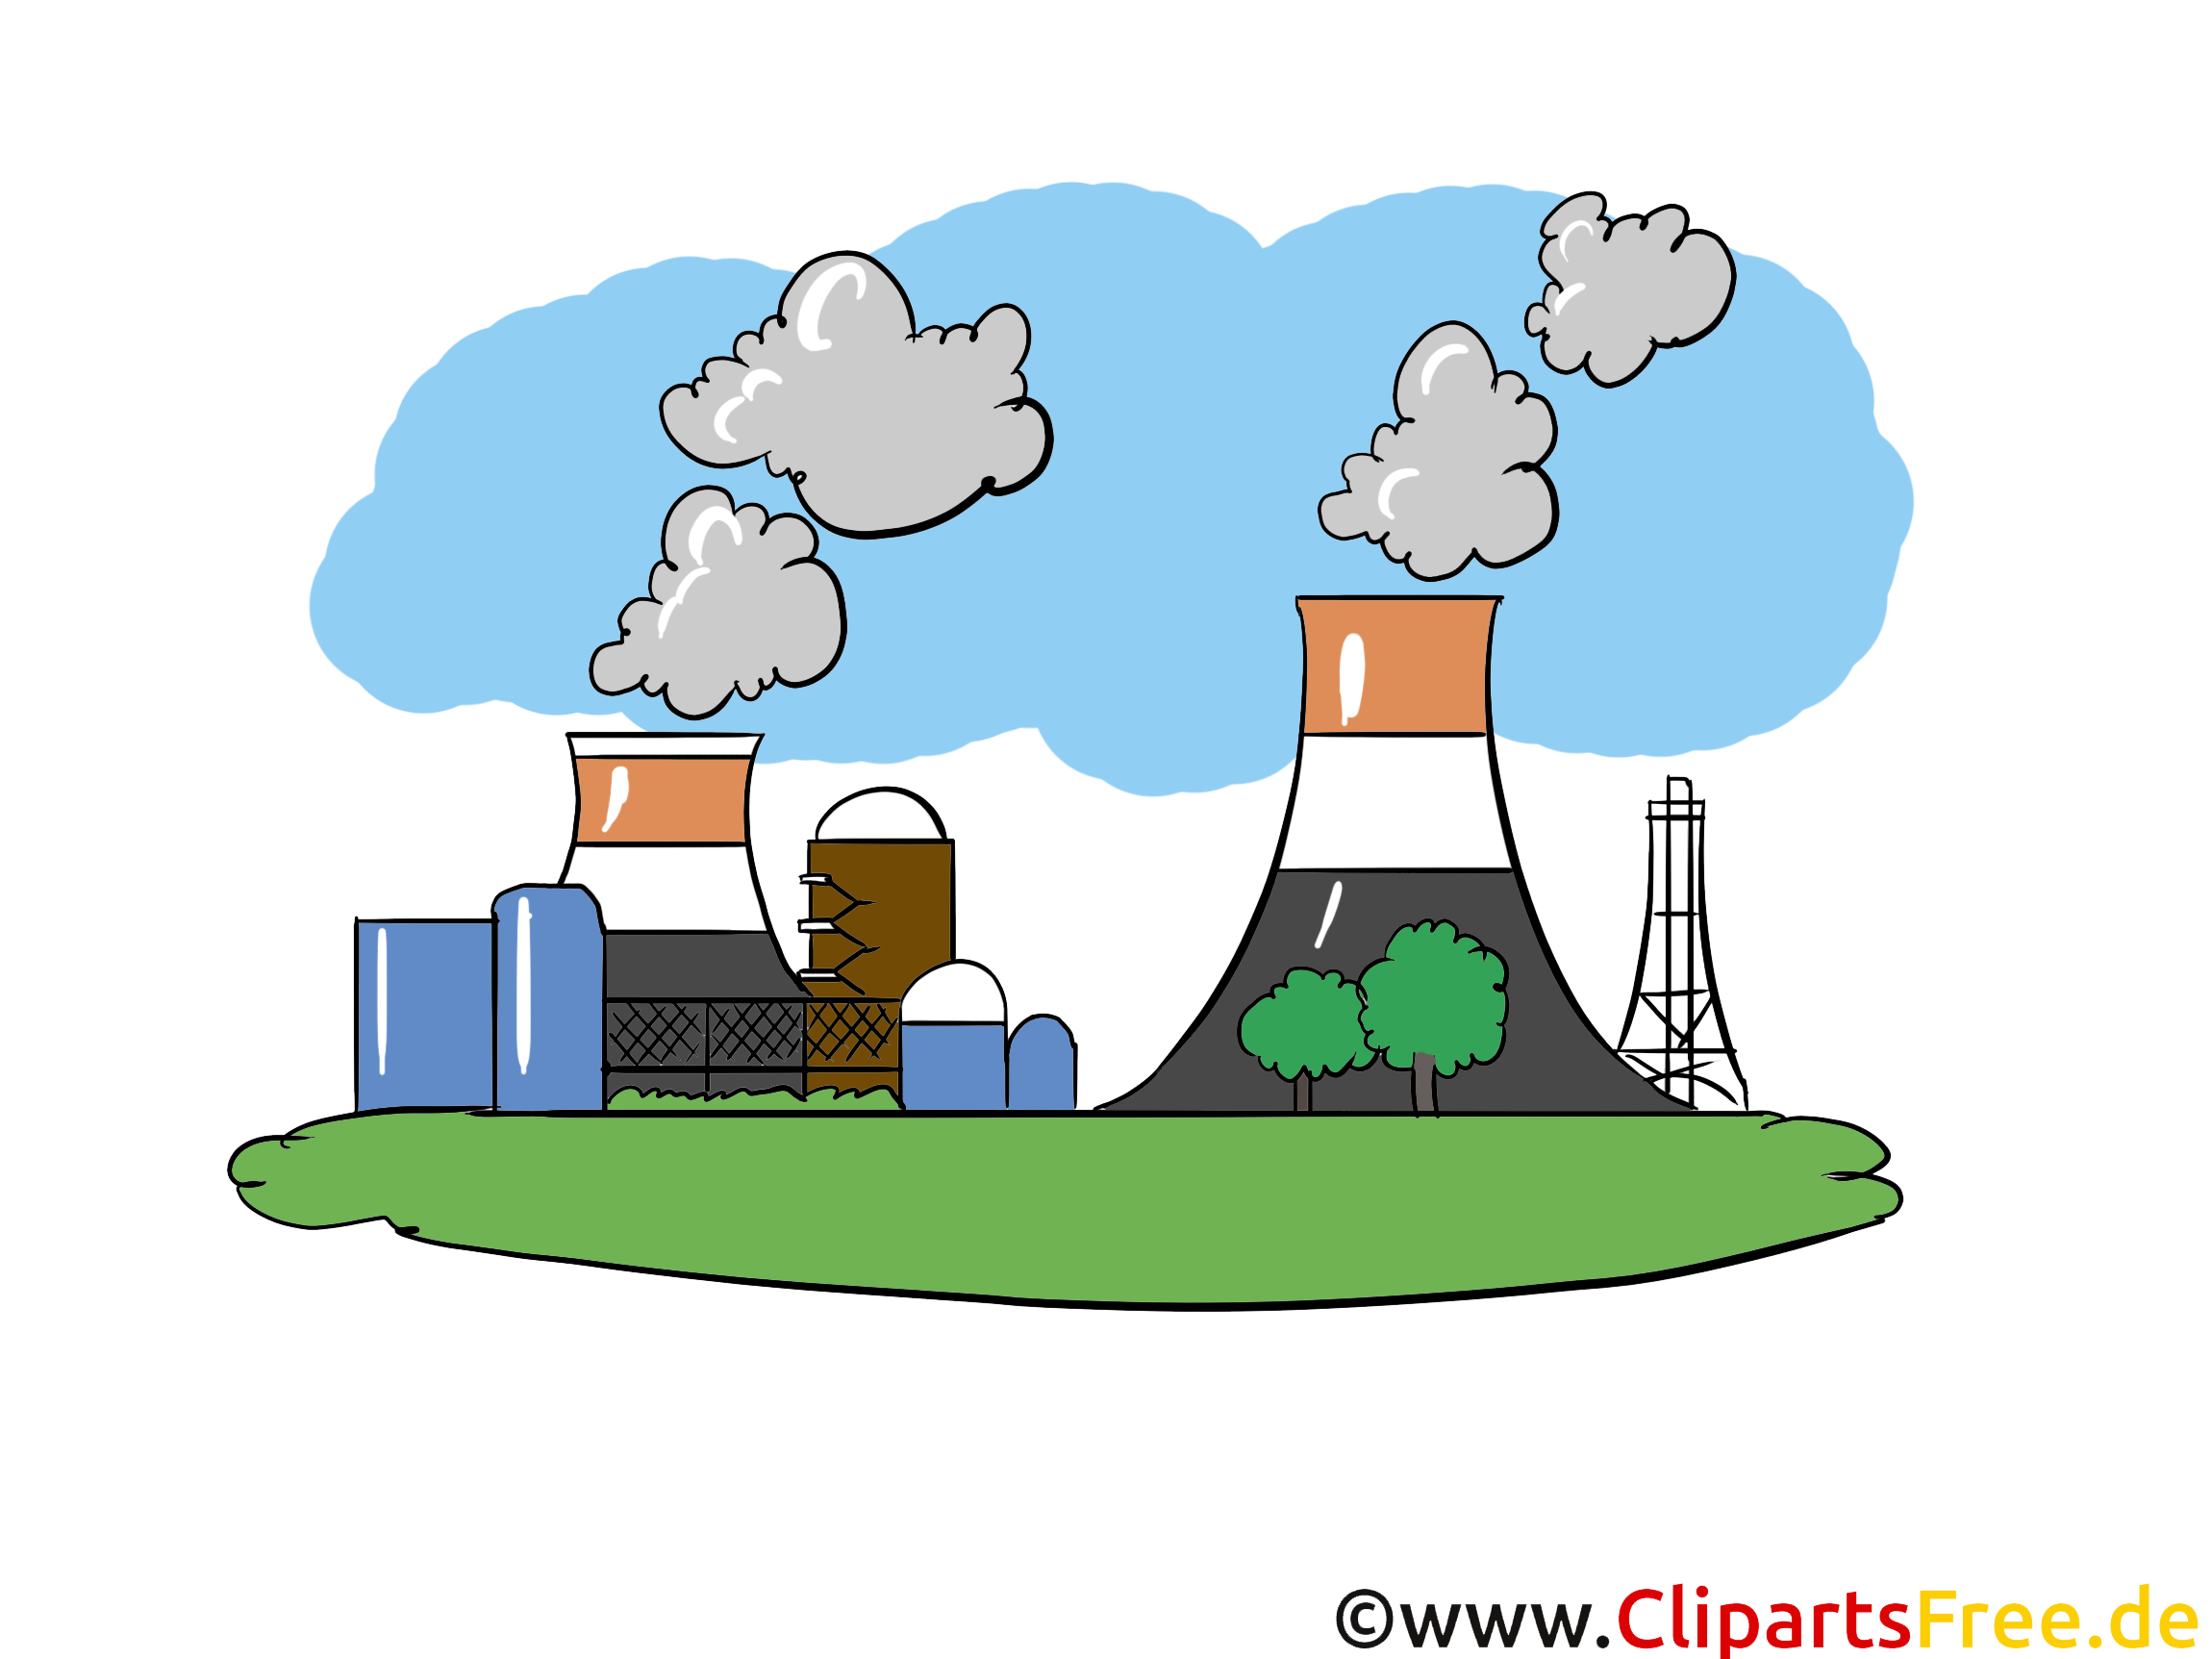 clipart usine gratuit - photo #15